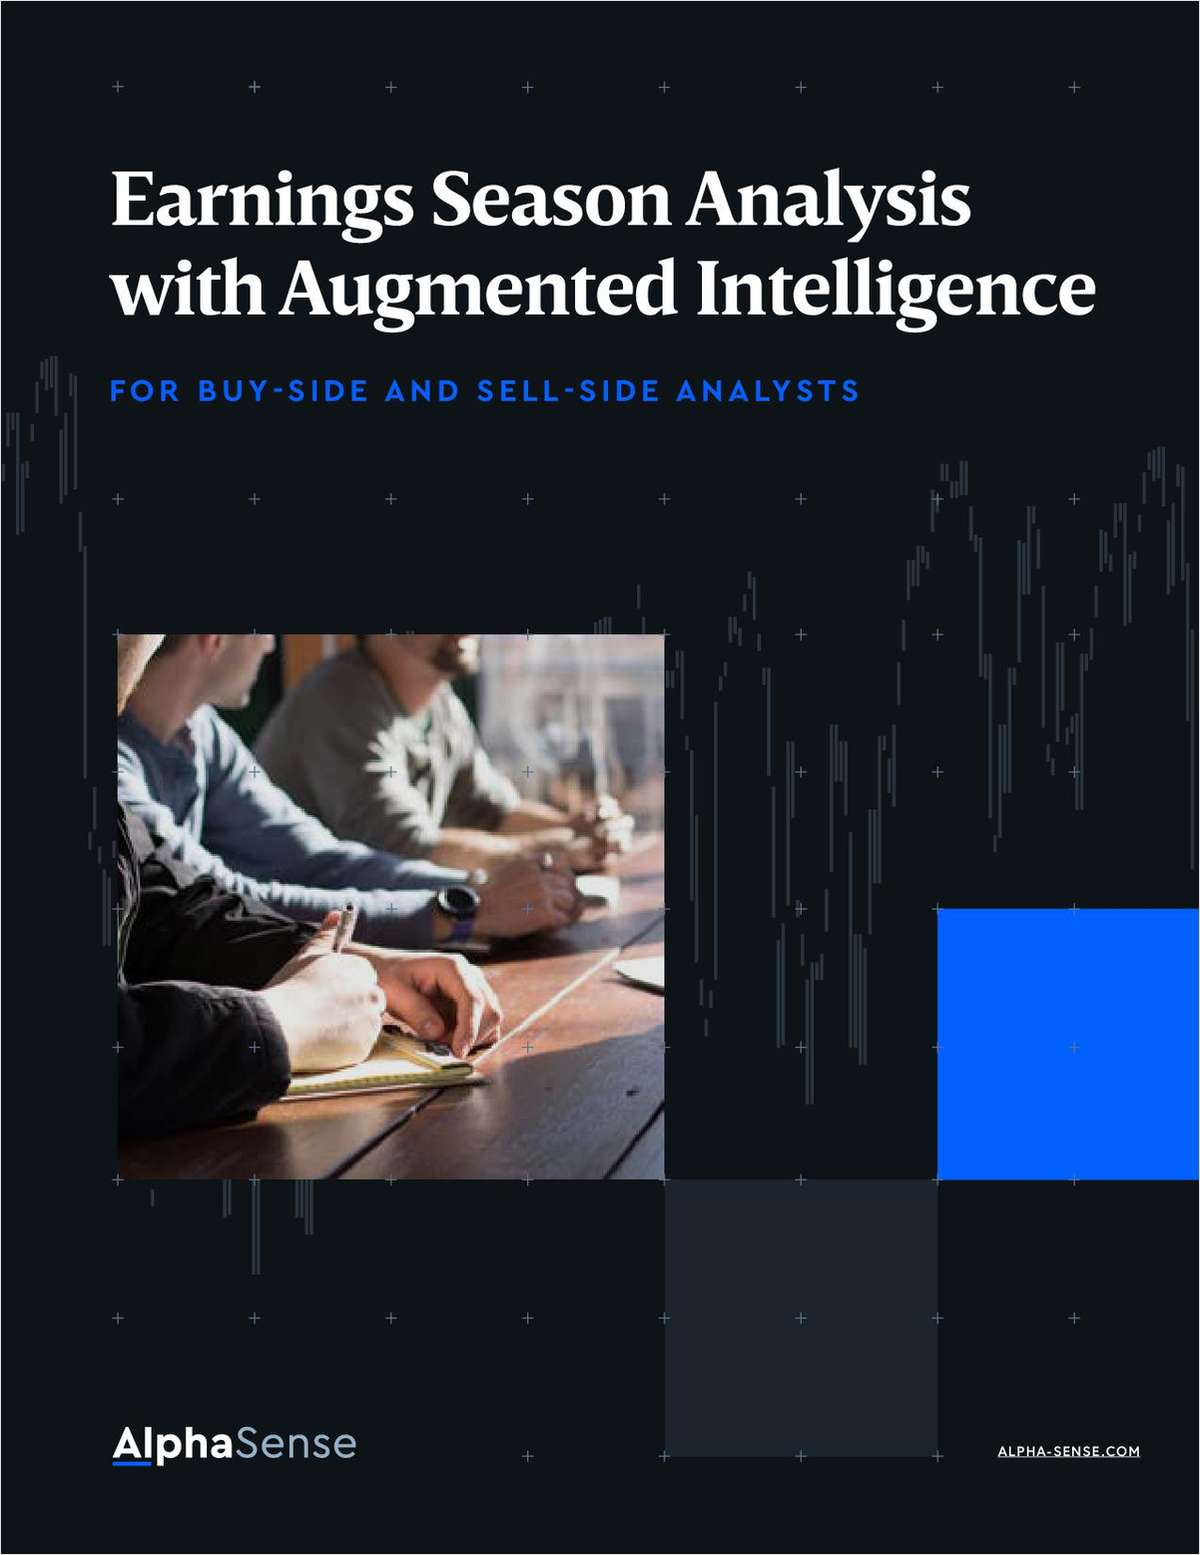 Earnings Season Analysis with Augmented Intelligence